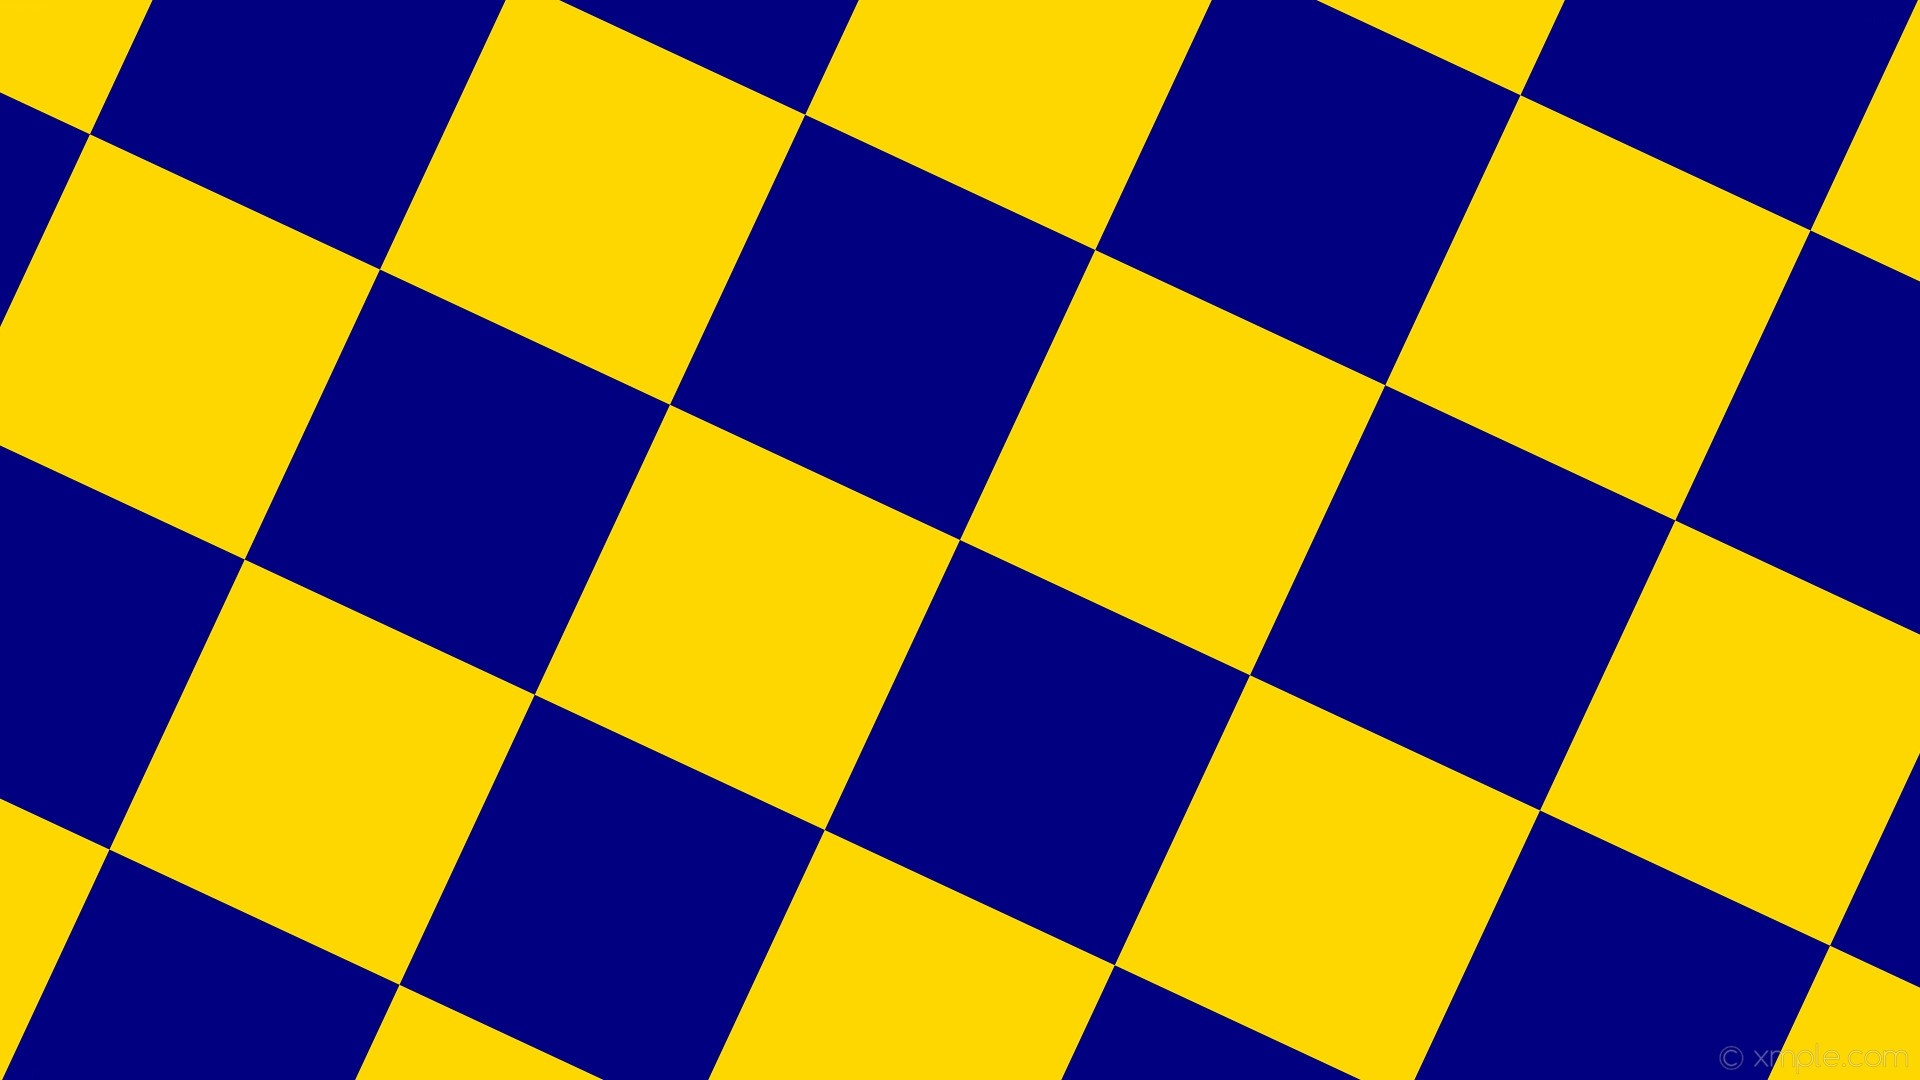 Checkered Desktop wallpaper